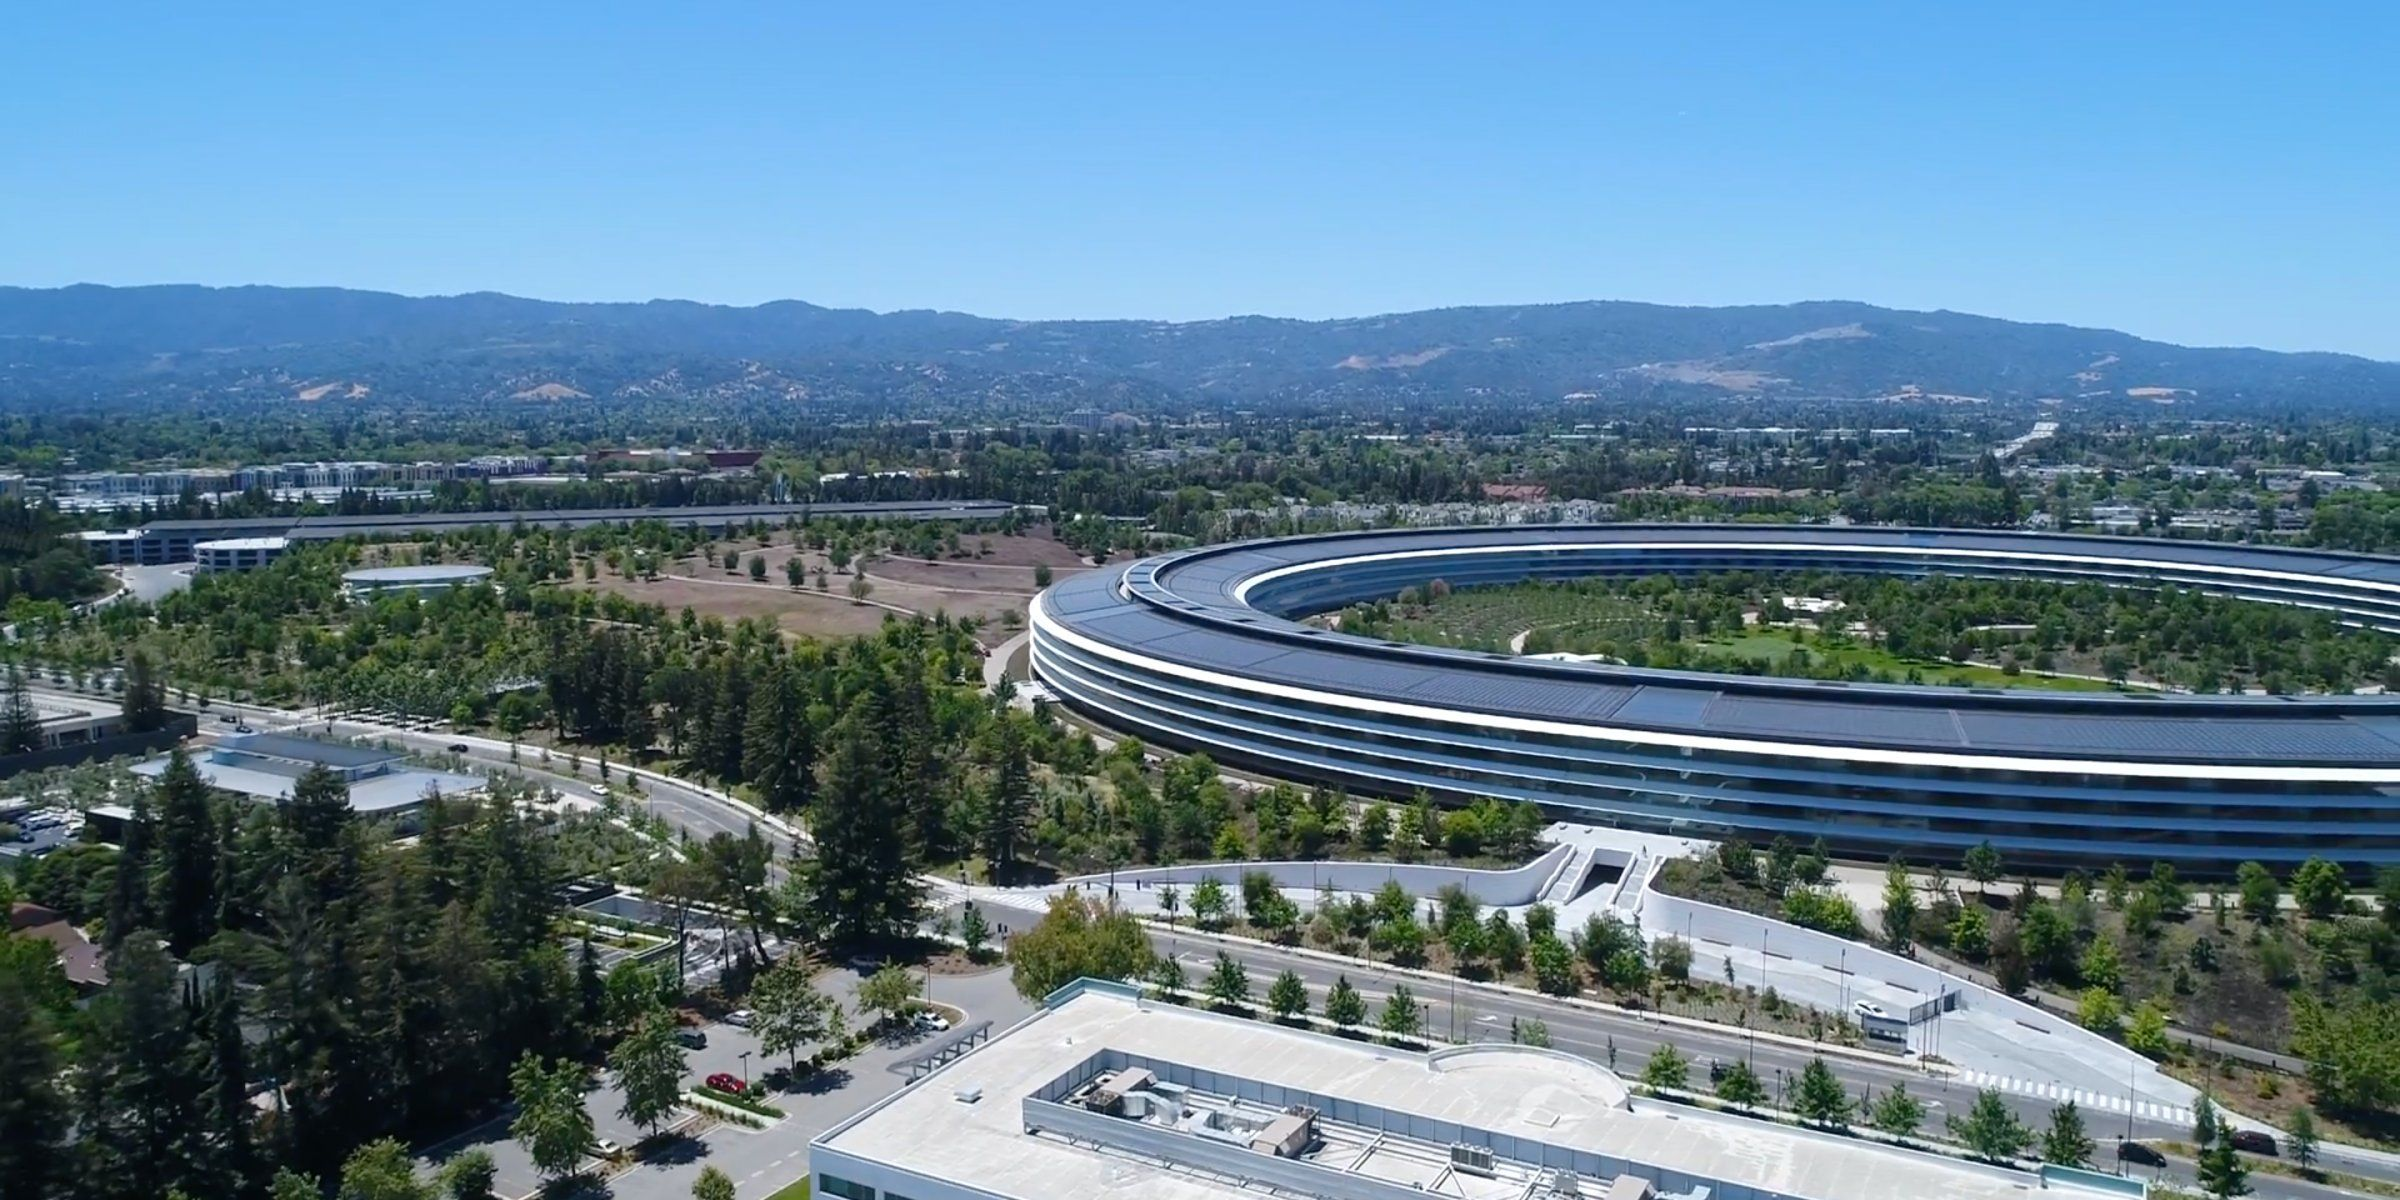 11 tips for visiting Apple's 5 billion headquarters